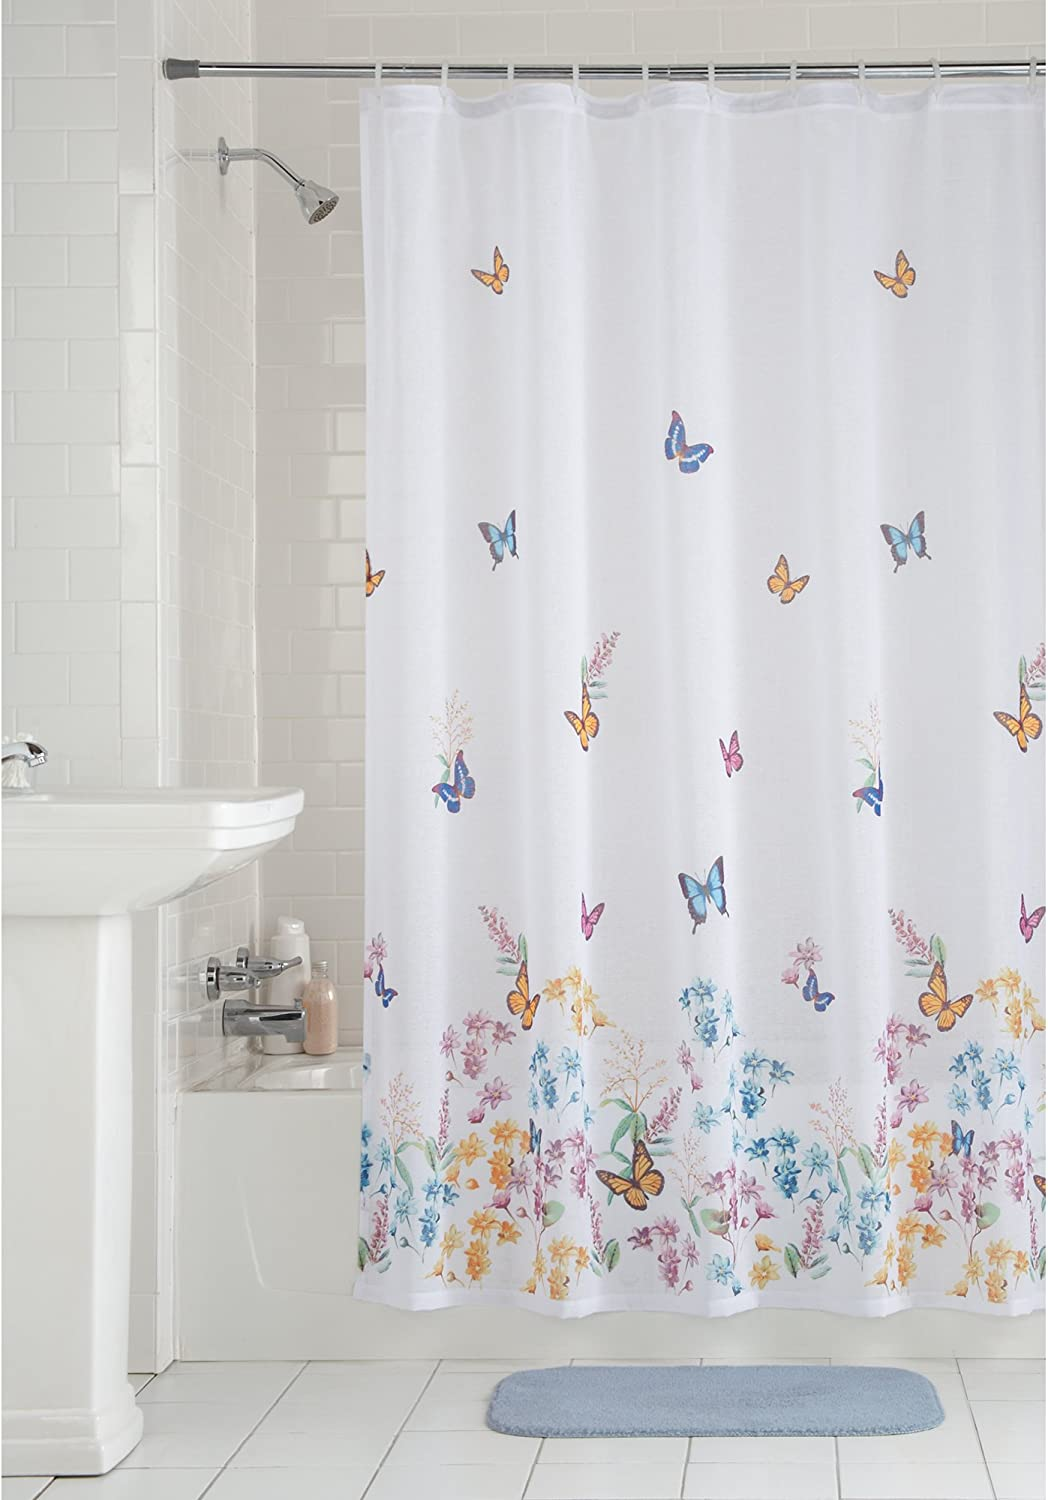 Mainstay Butterfly Fabric Shower Curtain